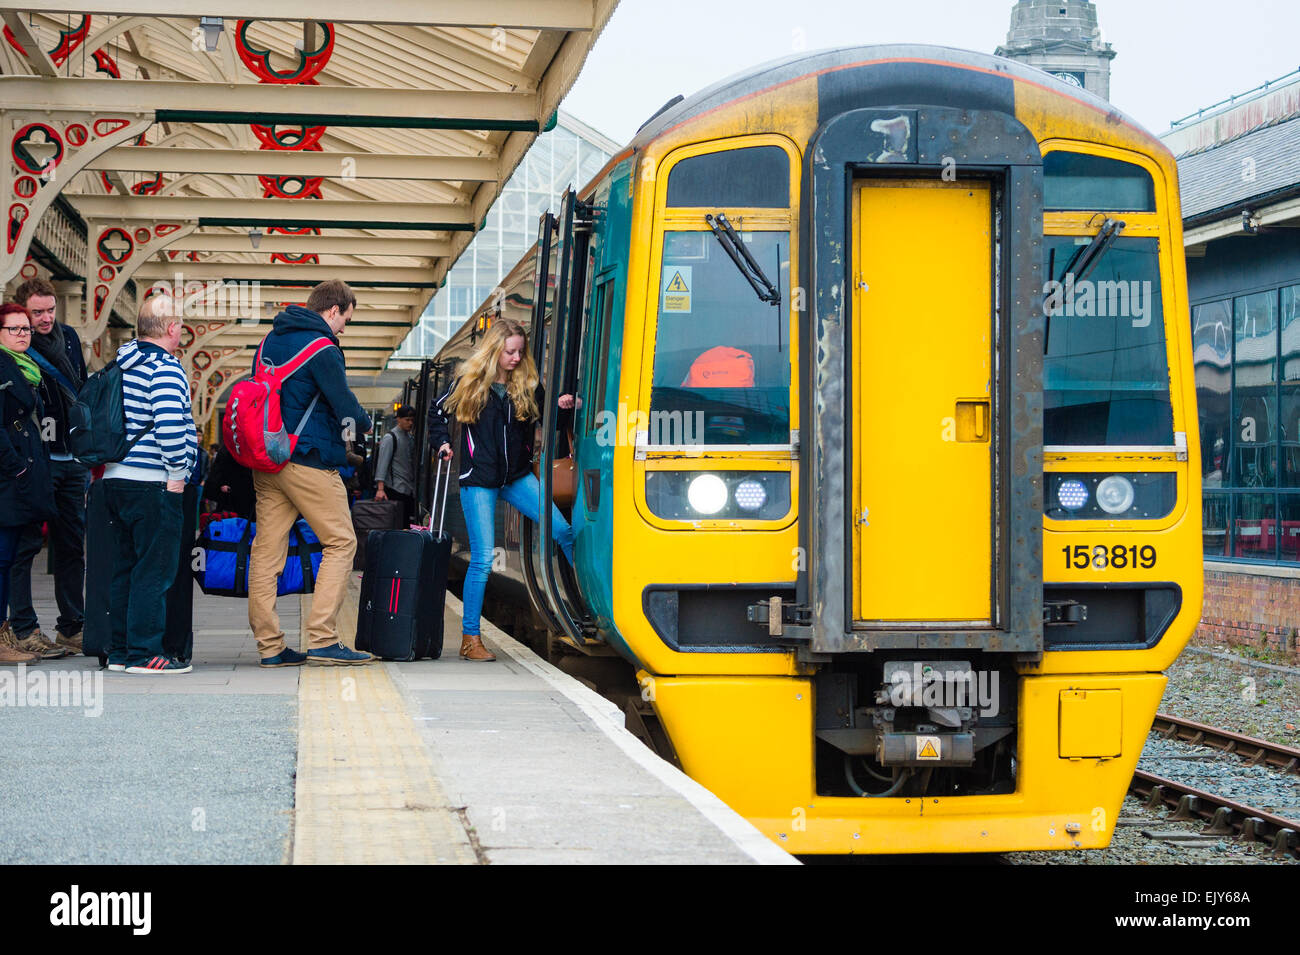 Public transport: University Students  going home boarding an Arriva Wales train at Aberystwyth railway station - Stock Image